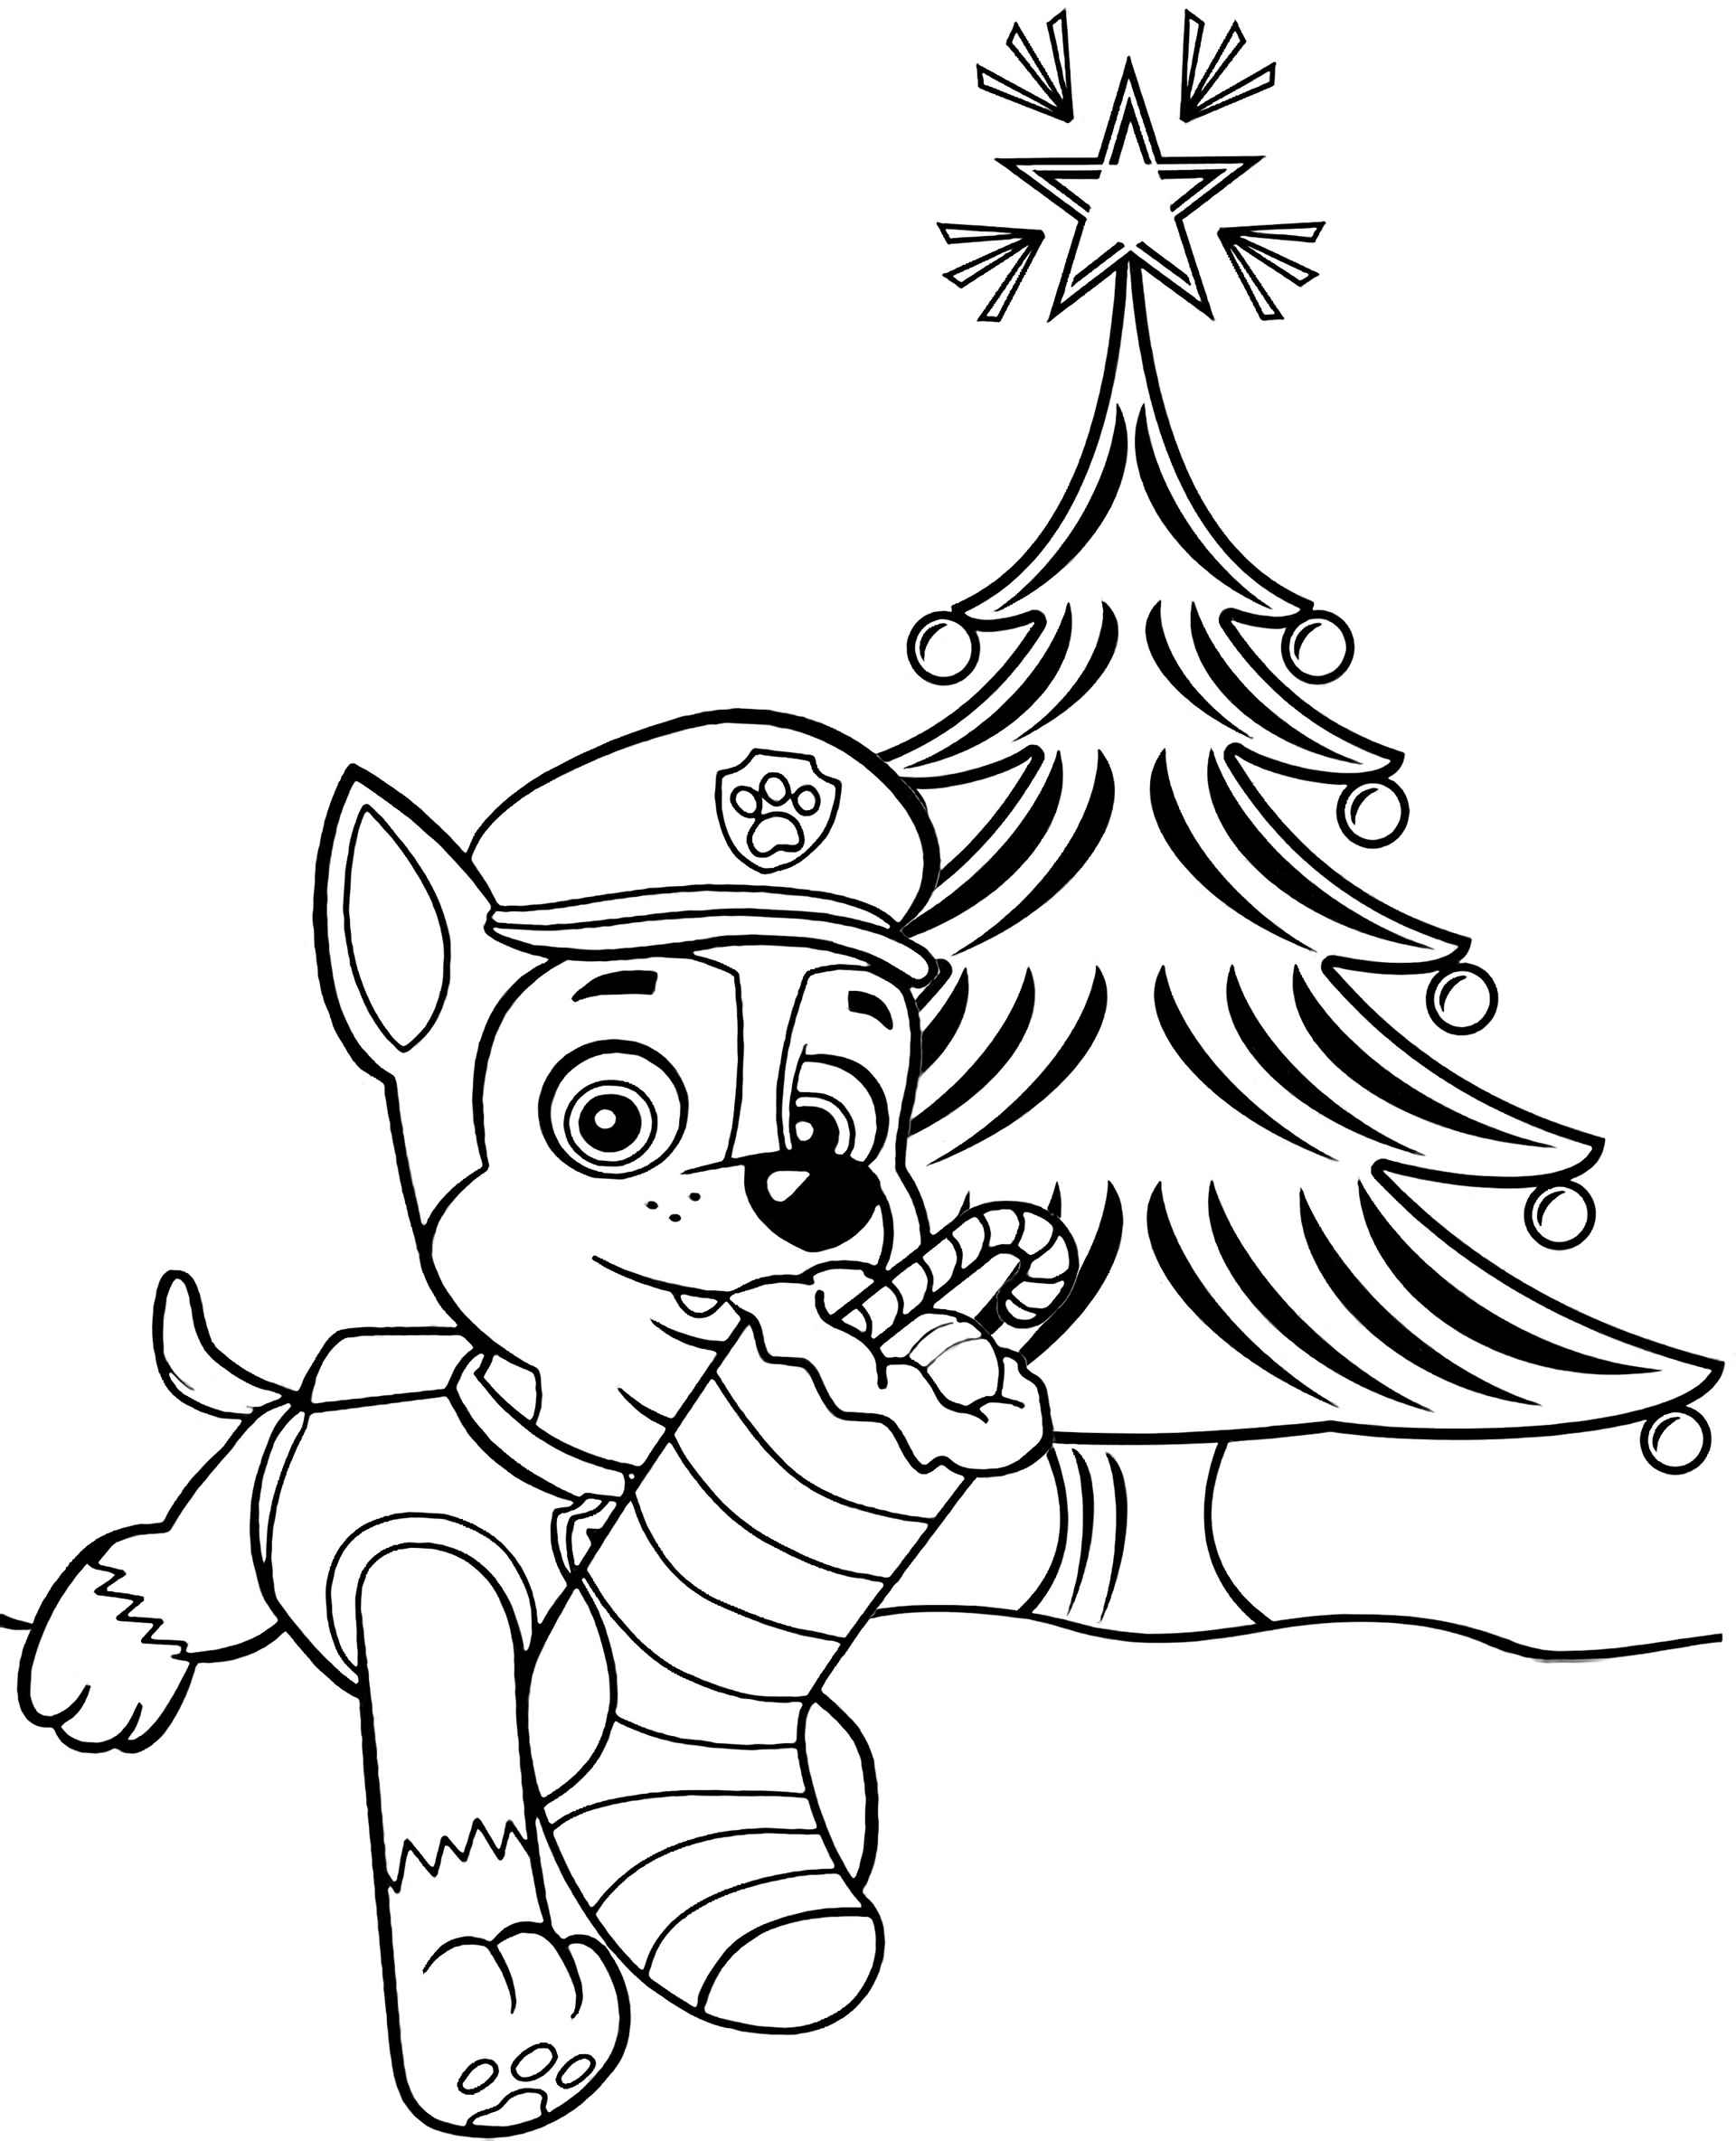 Chase From Paw Patrol And Christmas Coloring Sheets